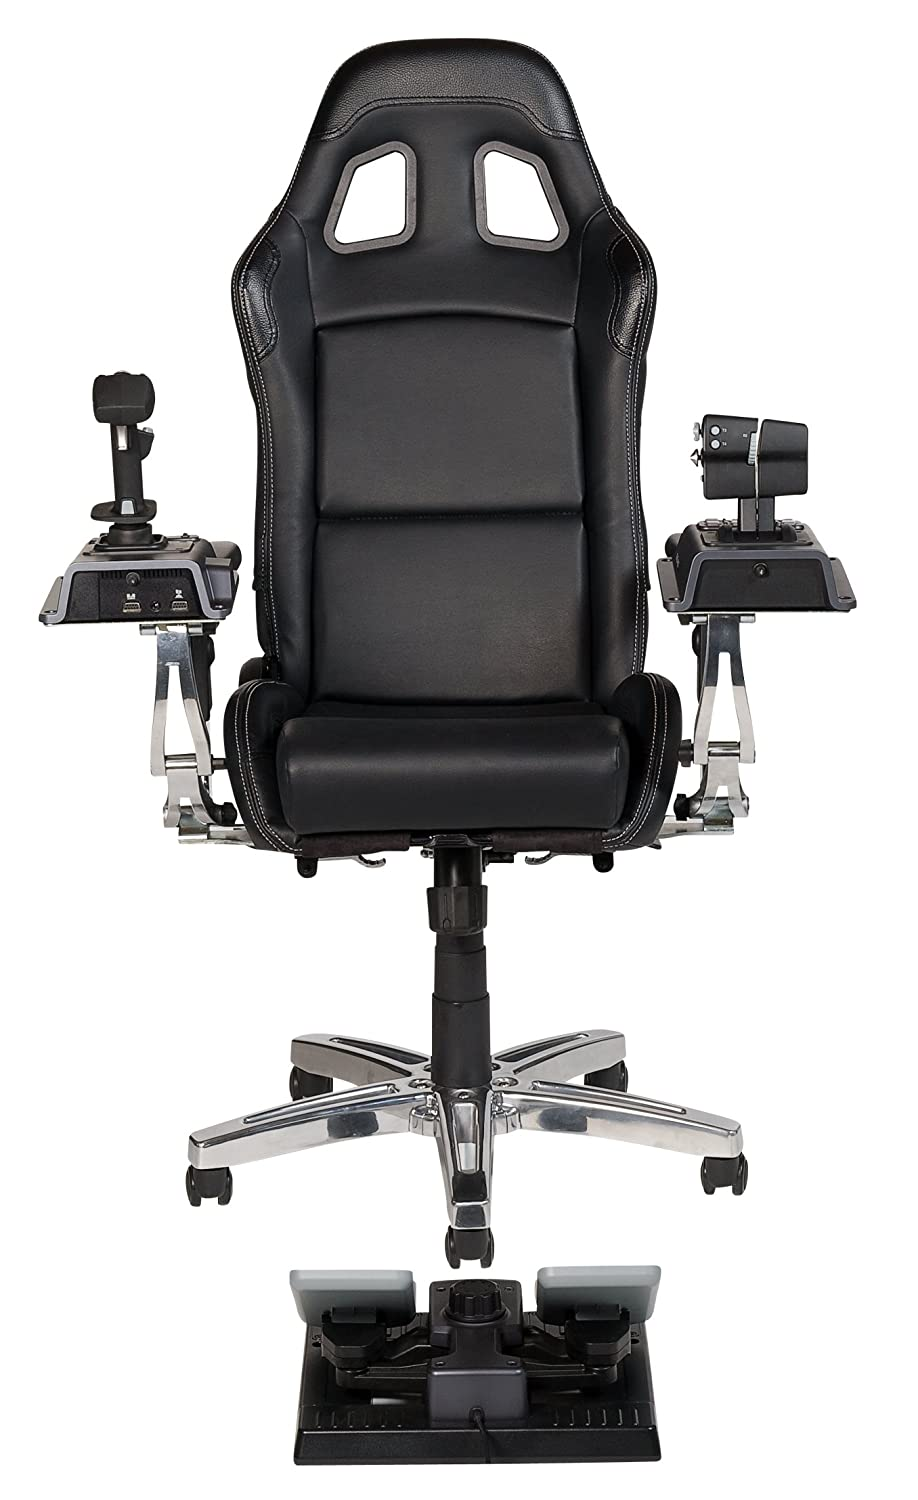 Playseat Elite Office Gaming Chair   Standard Edition: Not Machine  Specific: Computer And Video Games   Amazon.ca